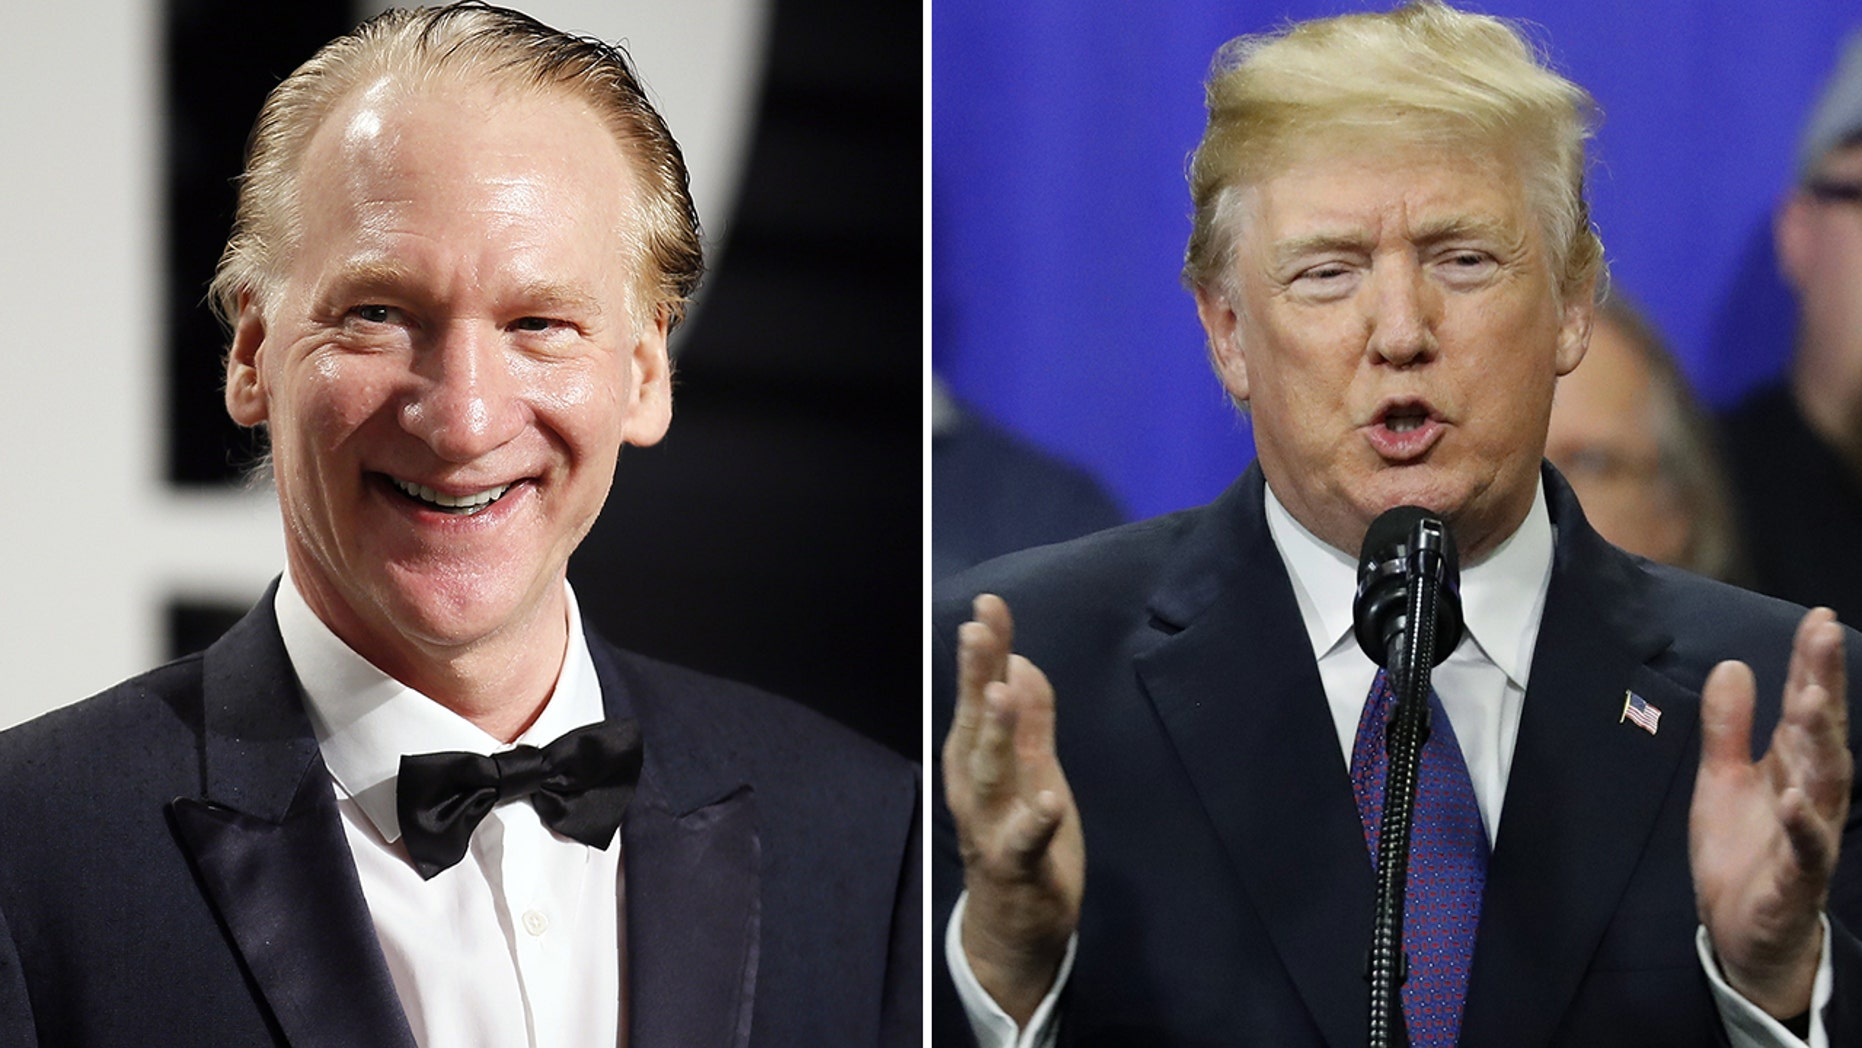 Comedian and TV host Bill Maher blasted Trump over his plan for an extravagant military parade on his show Friday night.